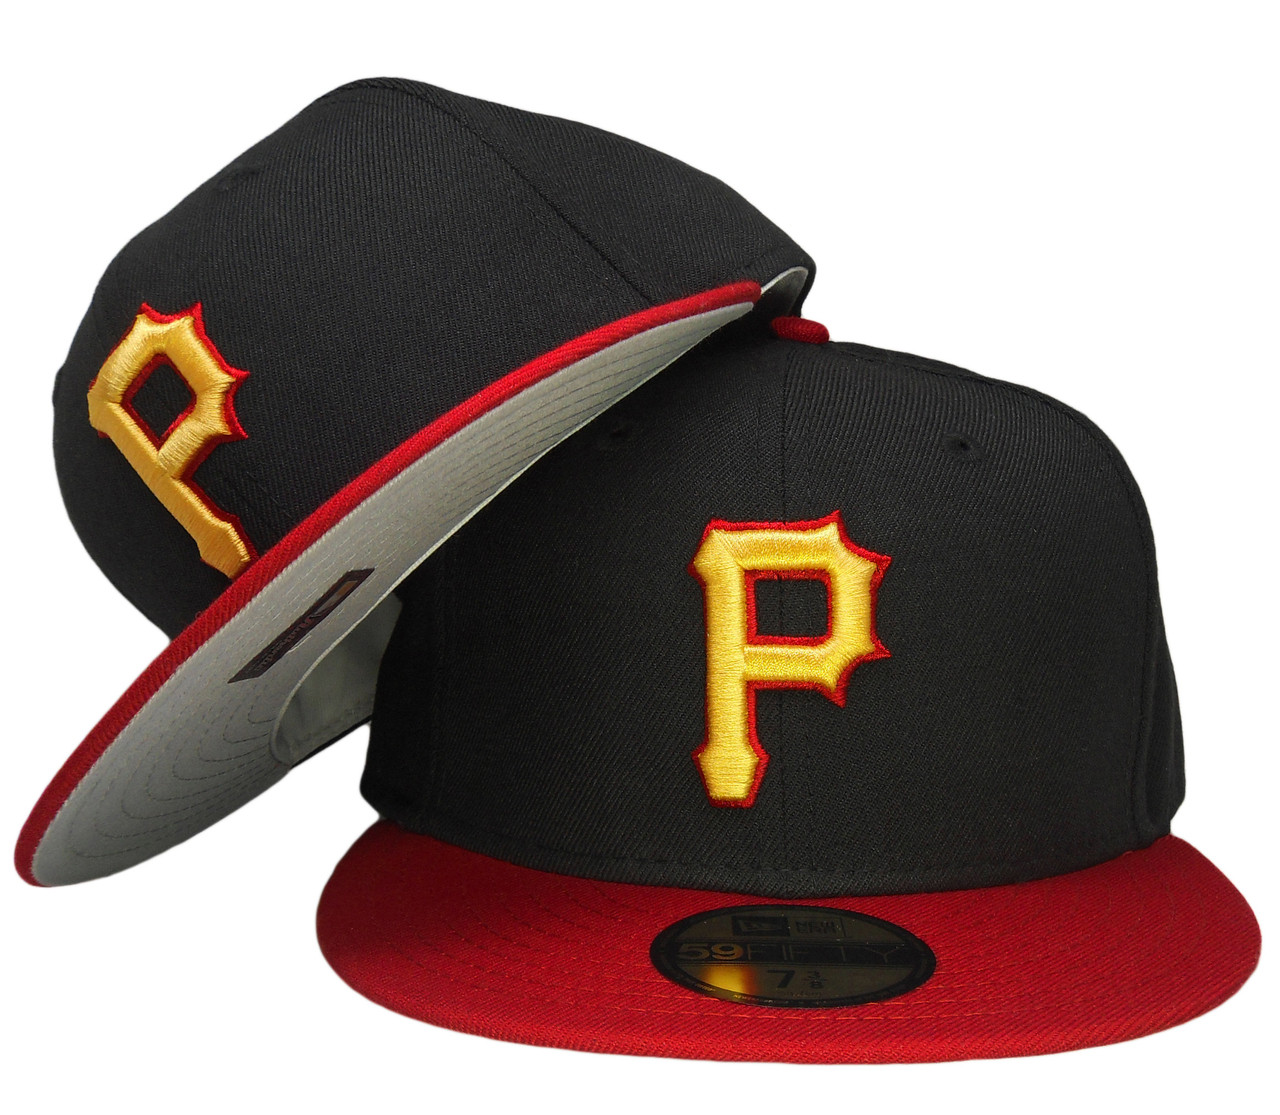 db97351d7 Pittsburgh Pirates New Era 2008 Onfield Fitted Hat - Black, Red, Yellow